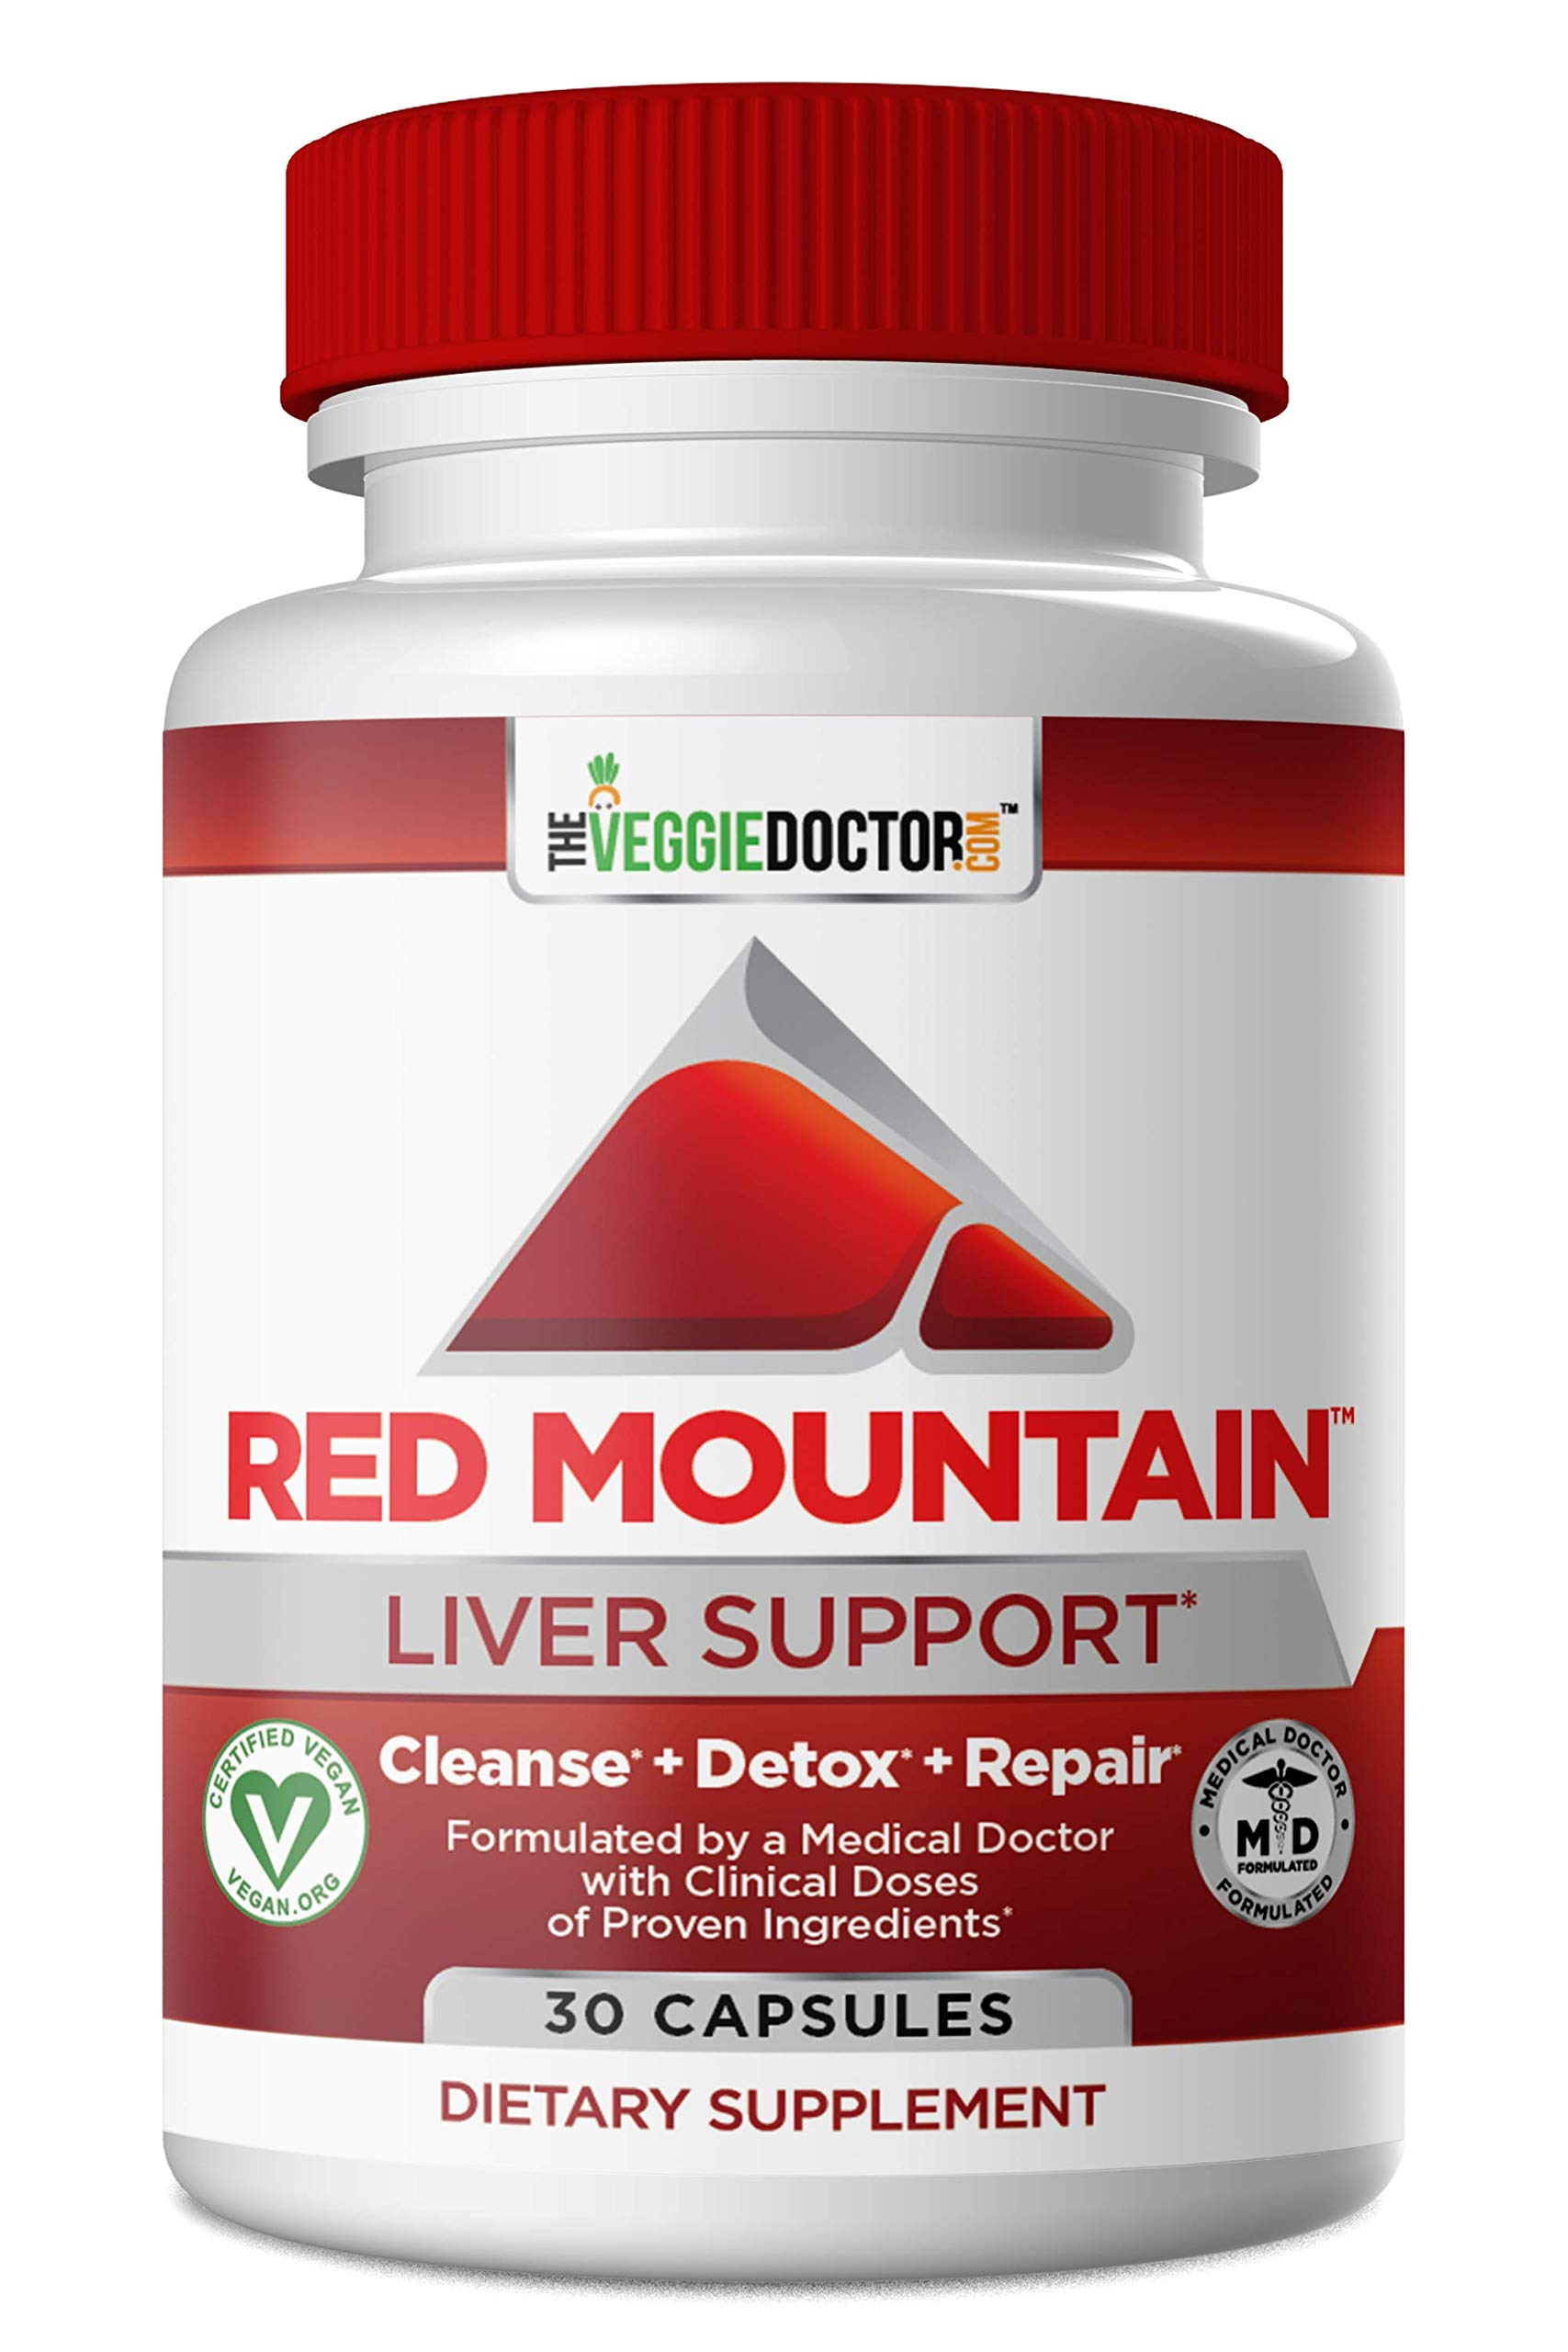 Red Mountain Liver Cleanse Detox Repair & Daily Support Supplement- Physician Formulated Detoxifier & Regenerator. Proven Ingredients- Milk Thistle (Silymarin), NAC, Dandelion Root 30 Vegan Capsules by The Veggie Doctor